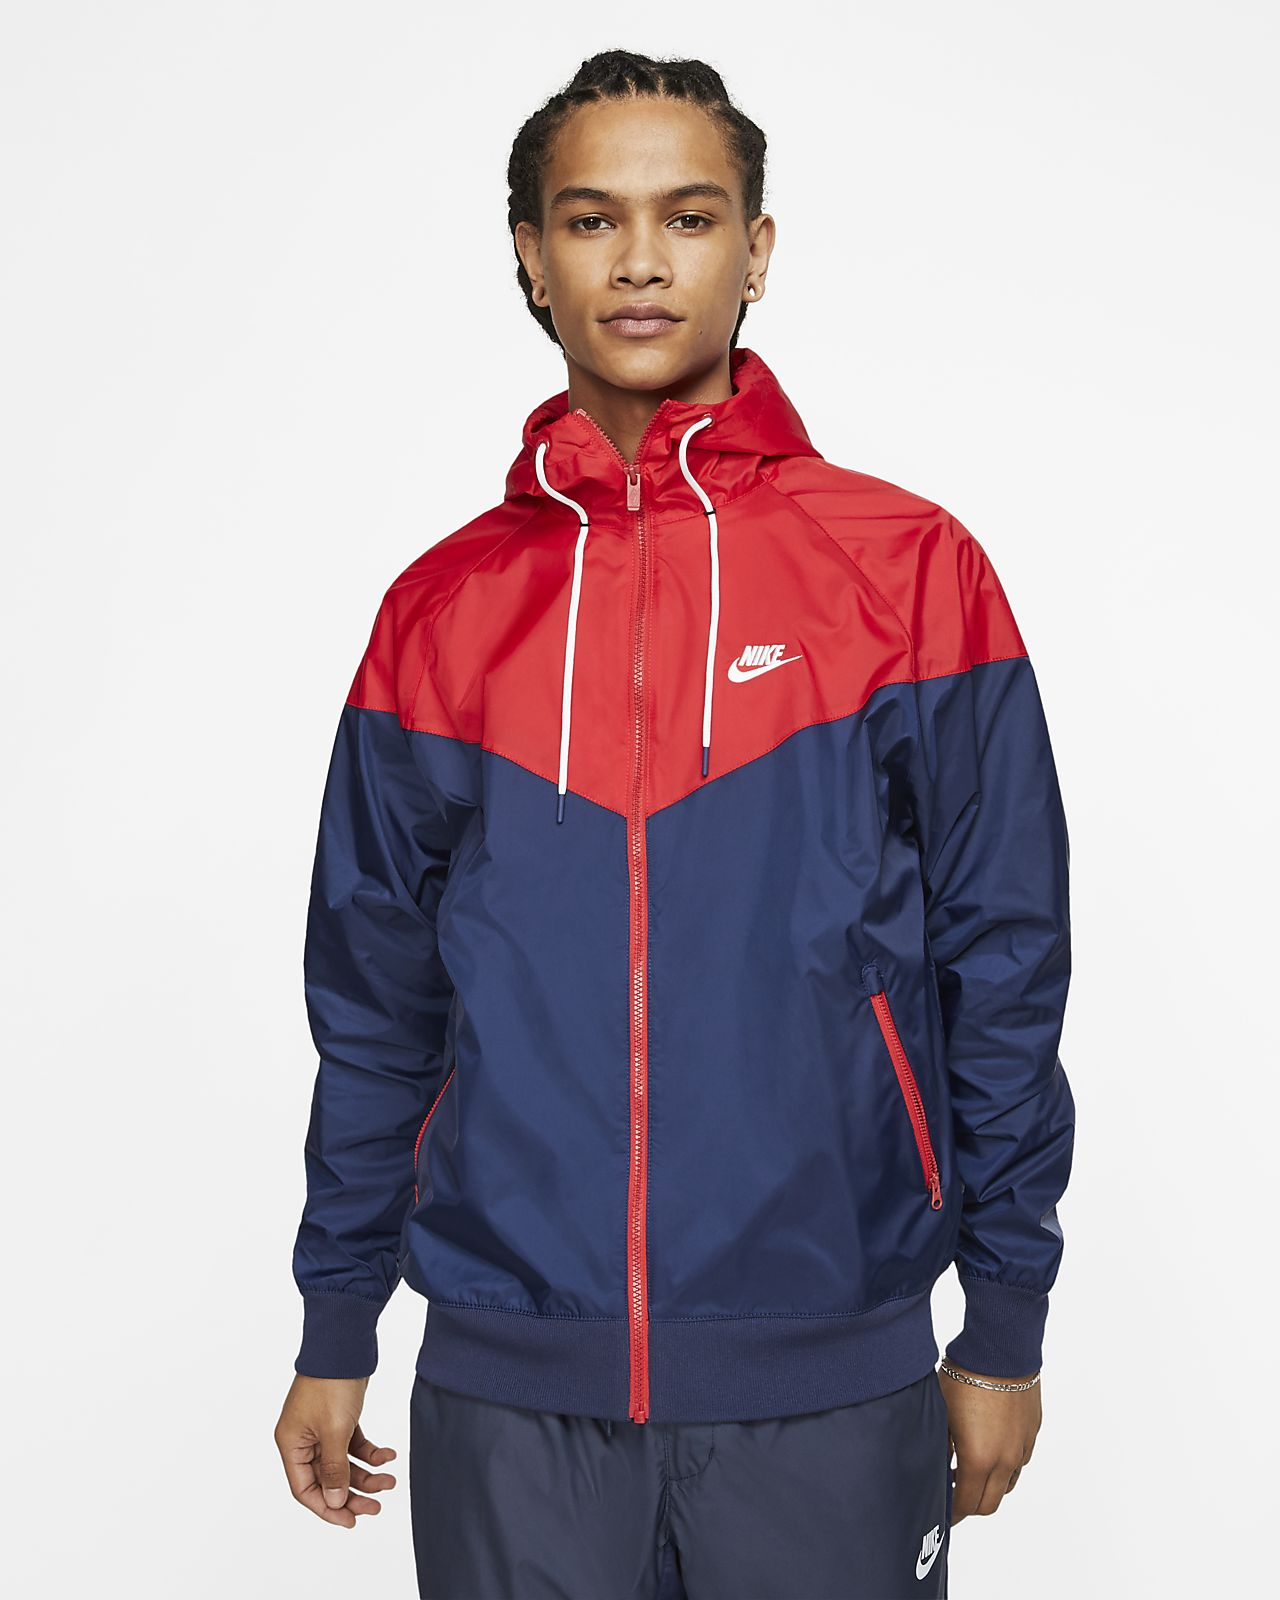 cc8127b8441be3 Nike Sportswear Windrunner Men's Hooded Windbreaker